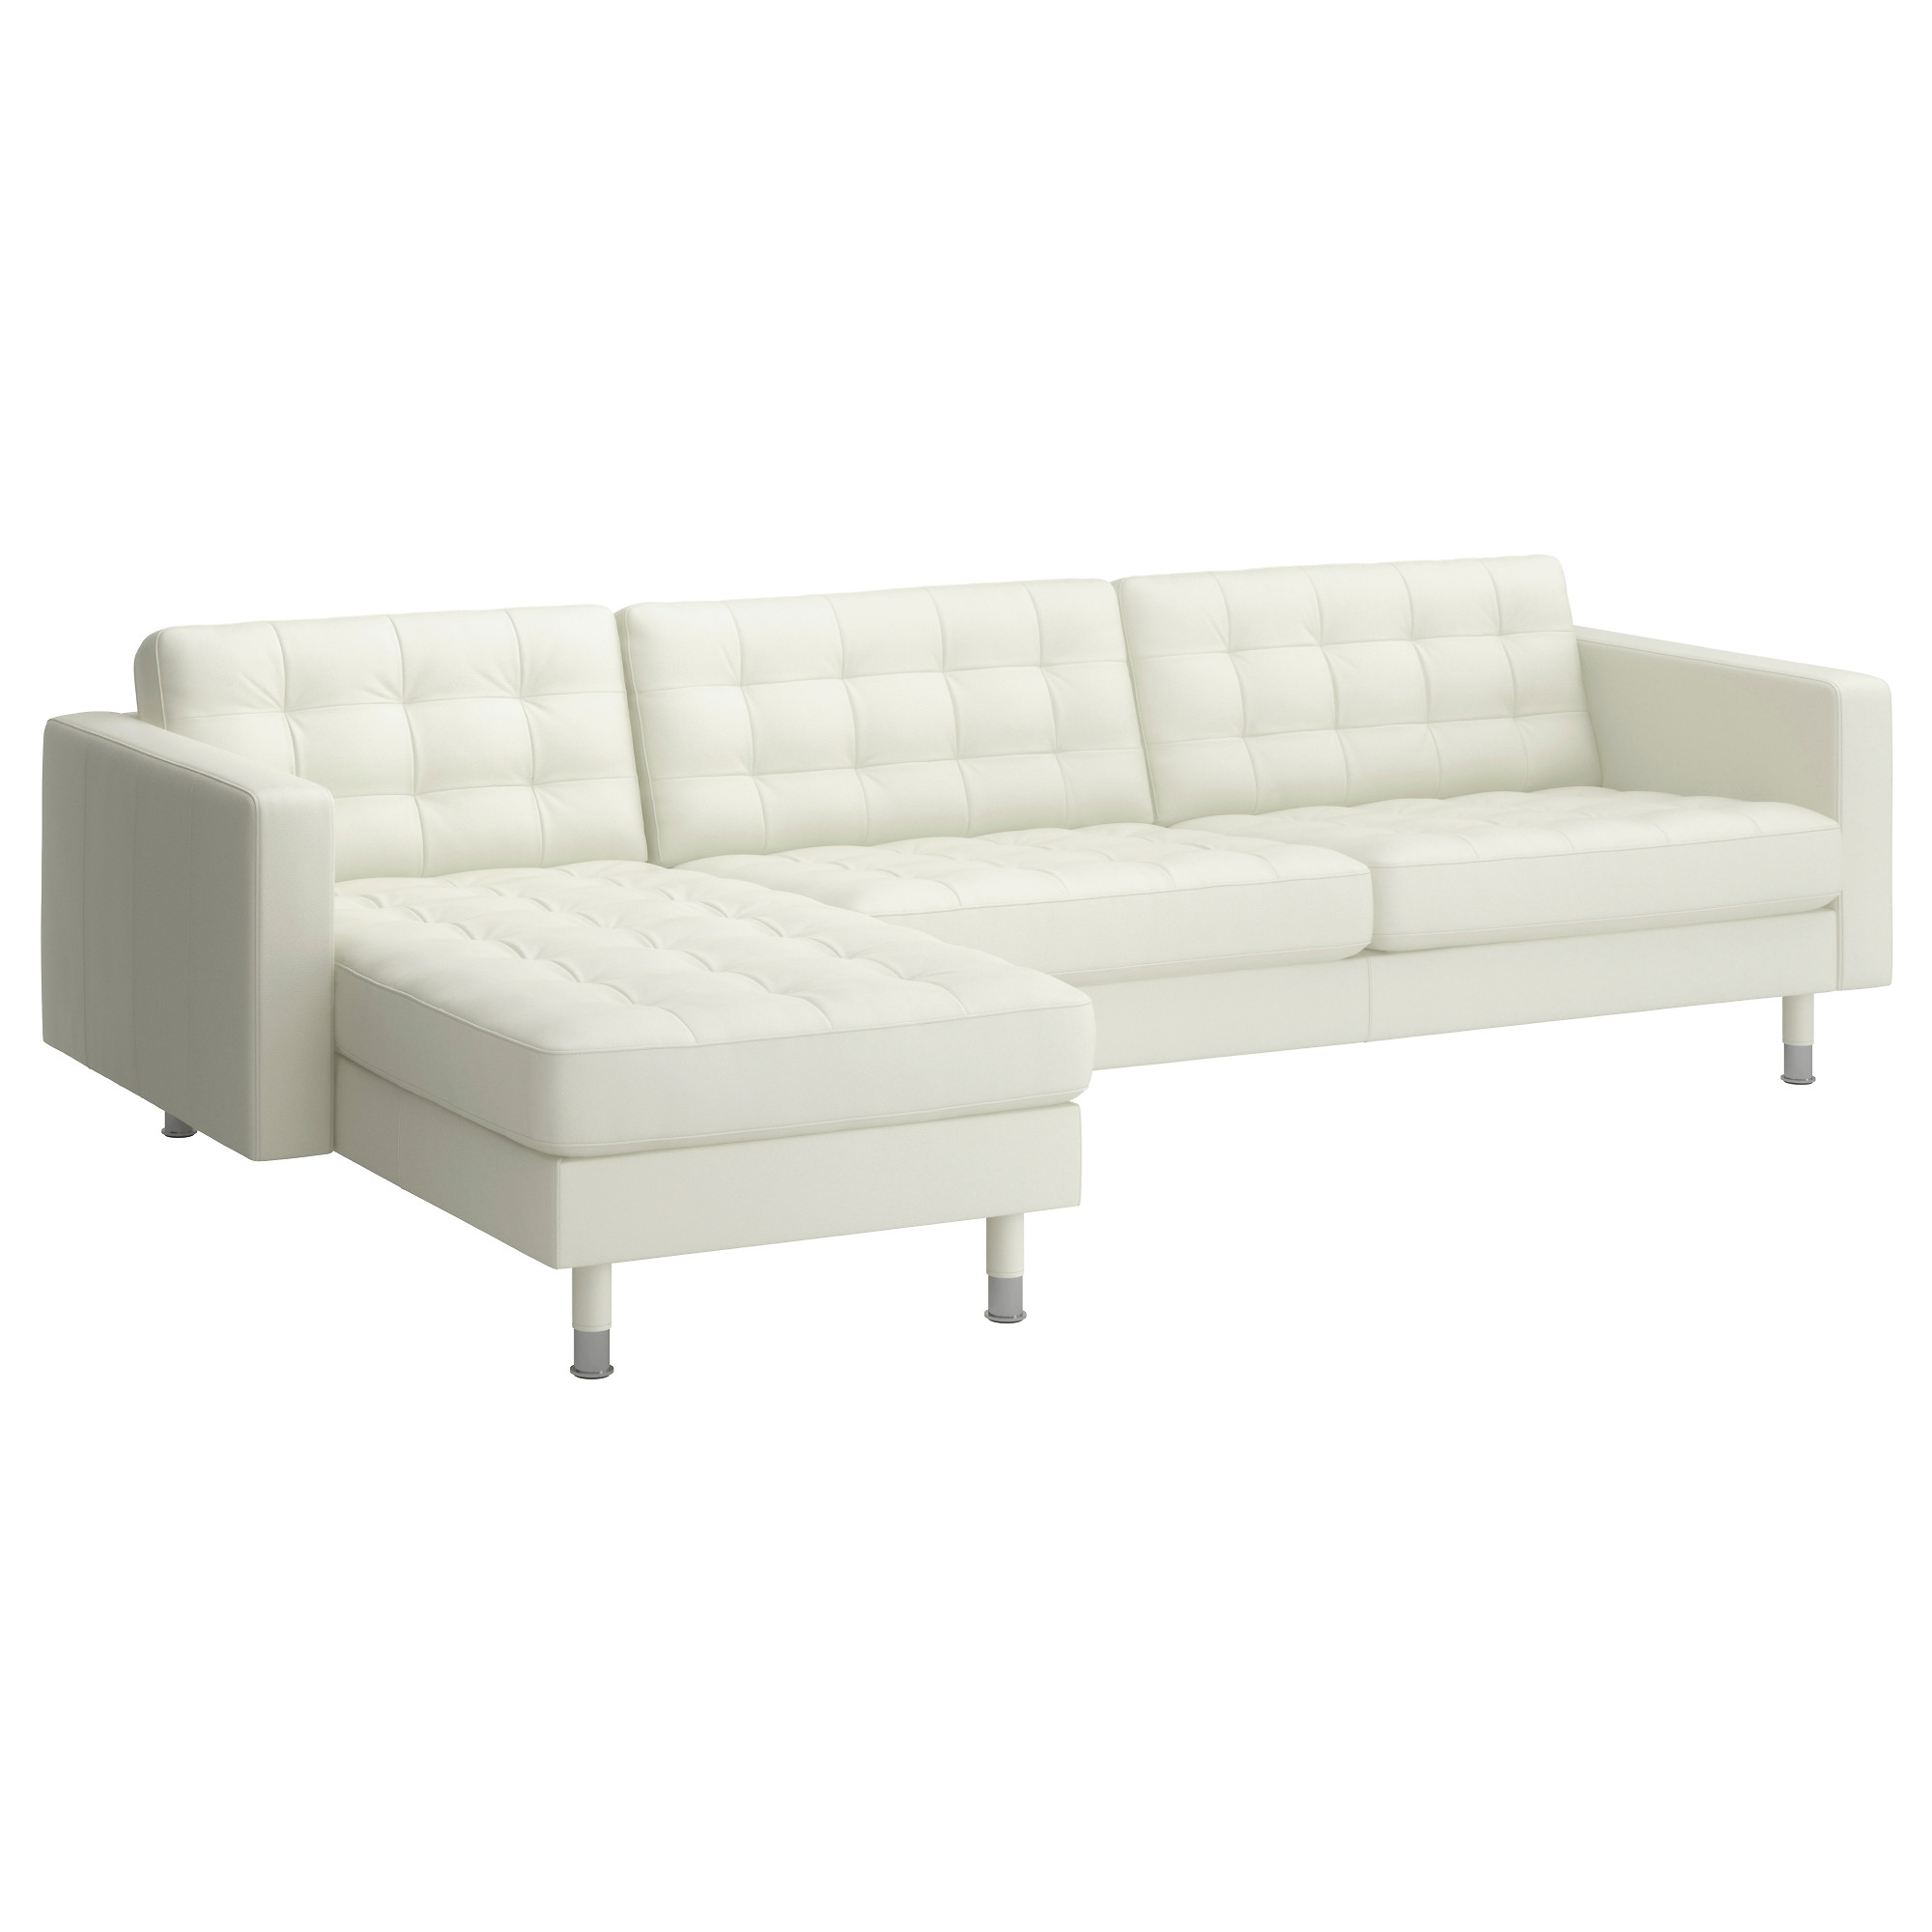 Landskrona Sectional, 4 Seat – Grann/bomstad White, Metal – Ikea In Latest Ikea Chaise Sofas (View 7 of 15)